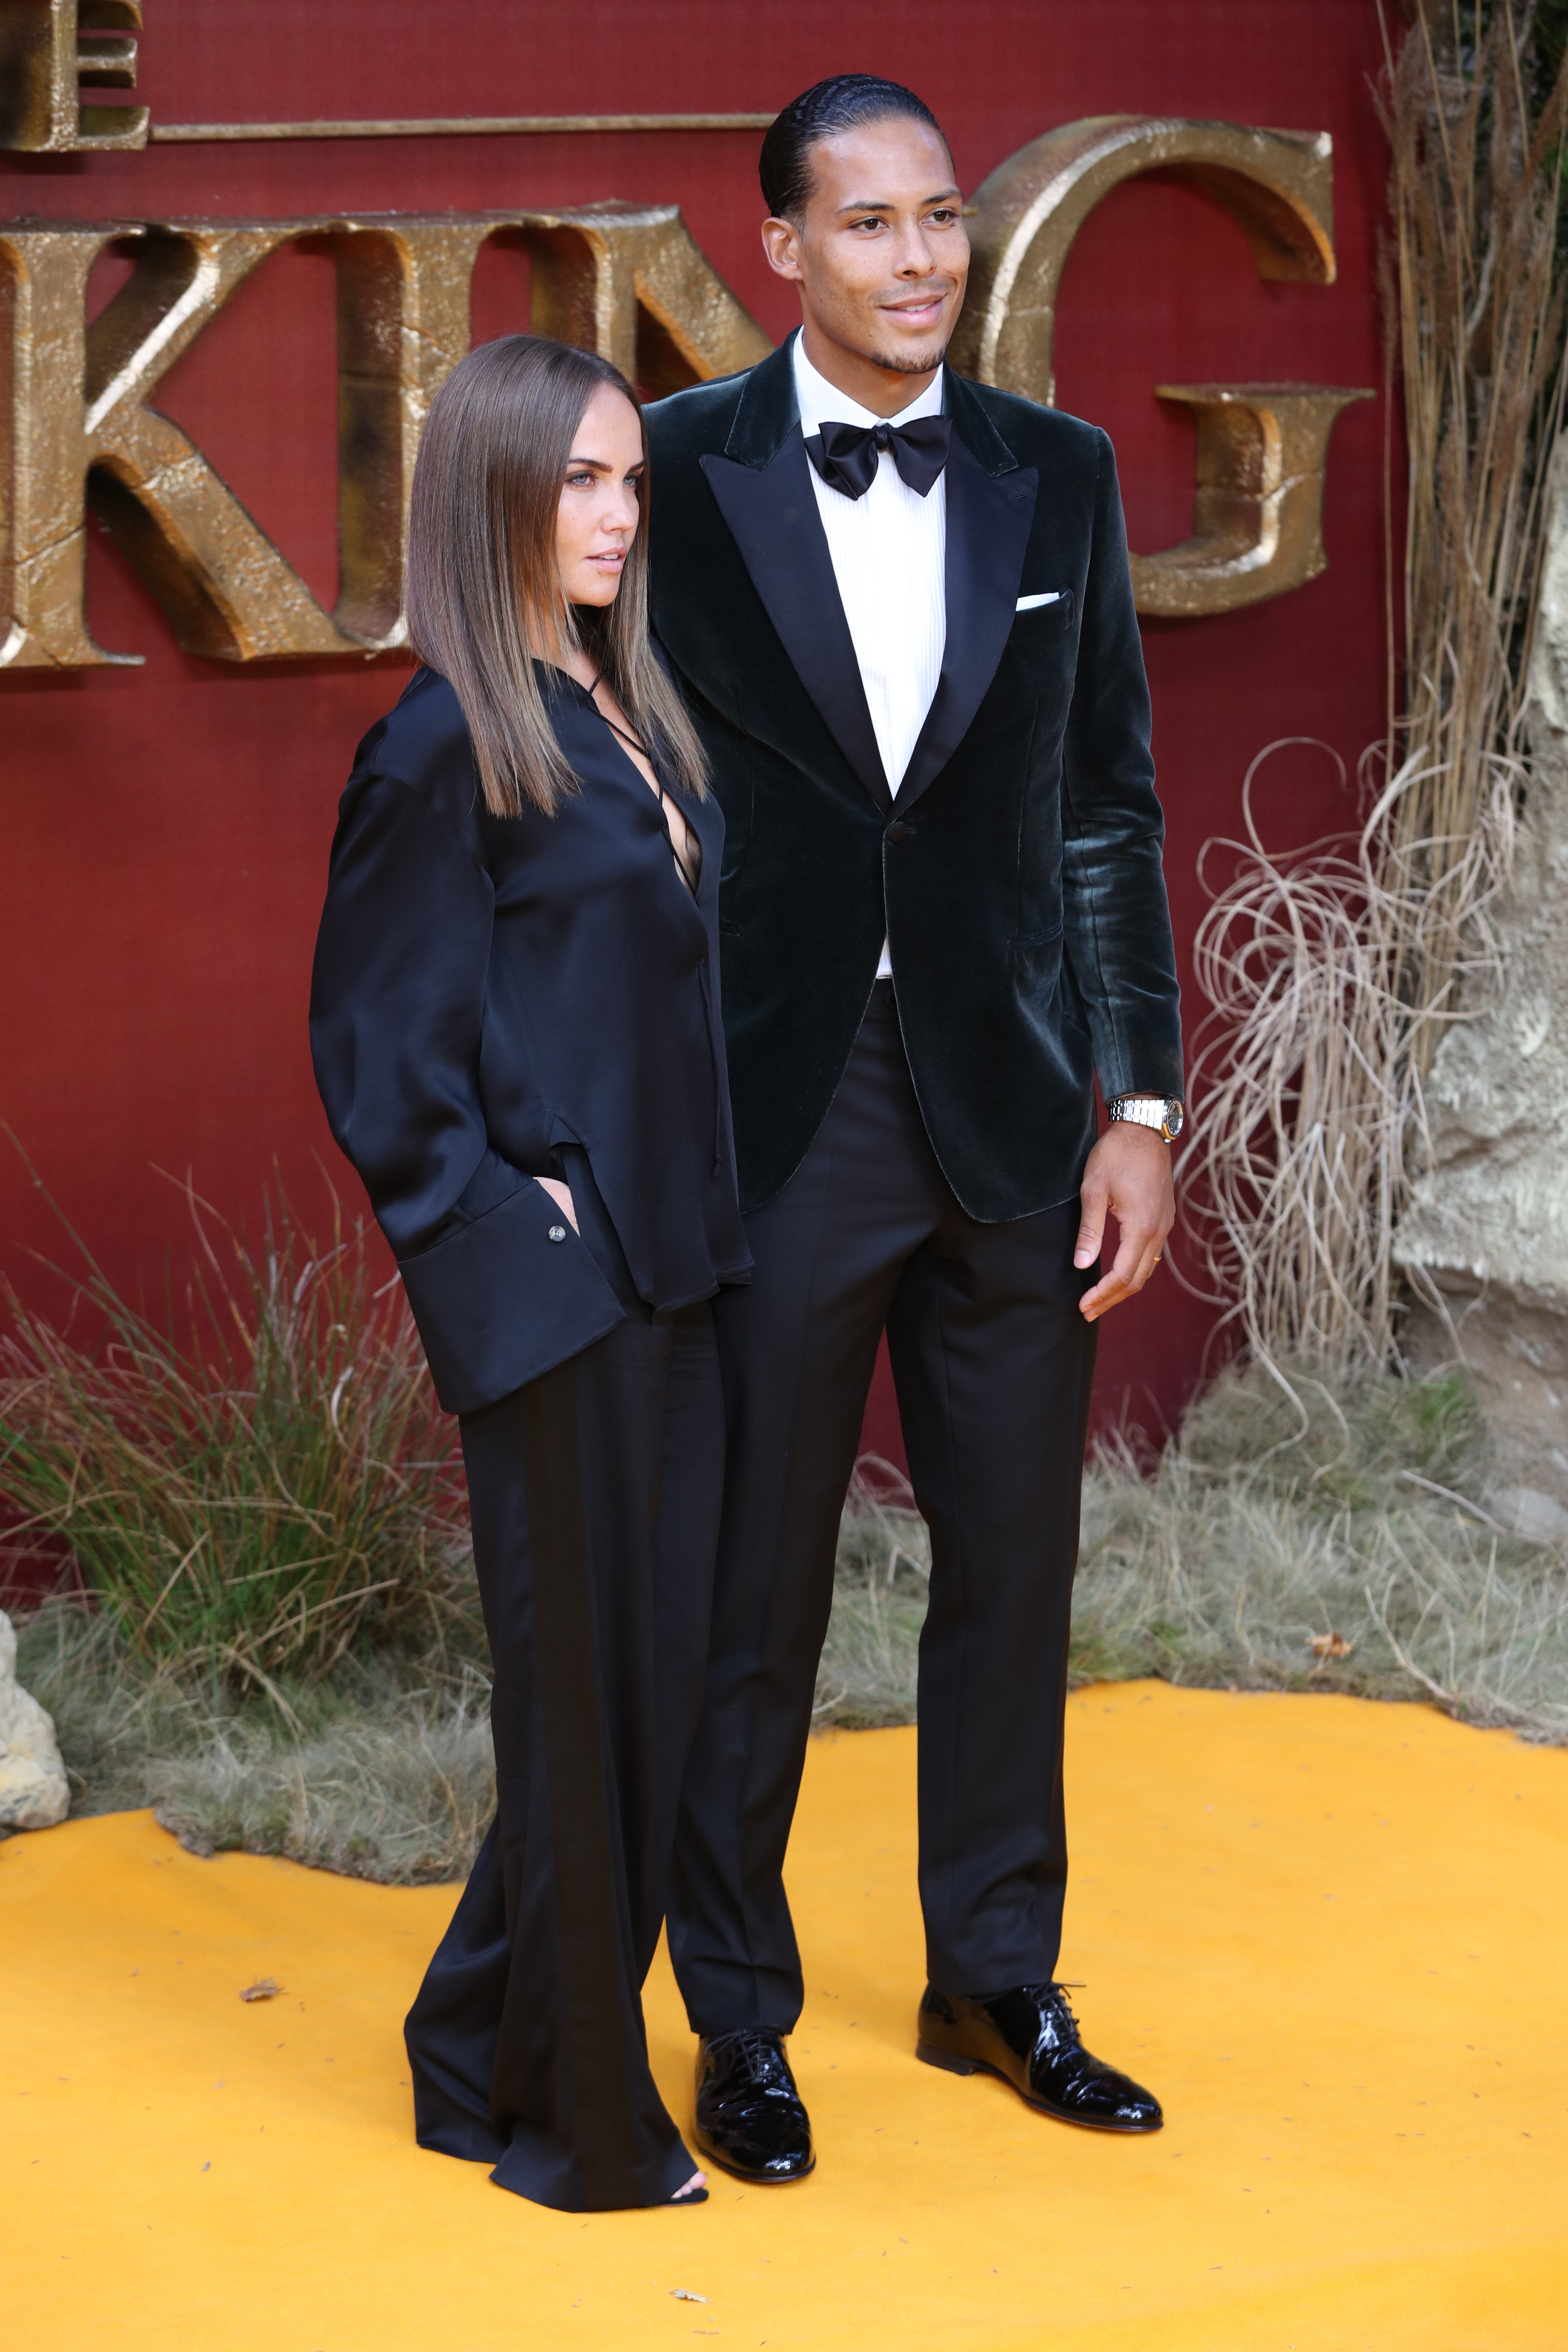 Virgil van Dijk and partner attend the European Premiere of Disney's The Lion King at the Odeon Leicester Square, London.